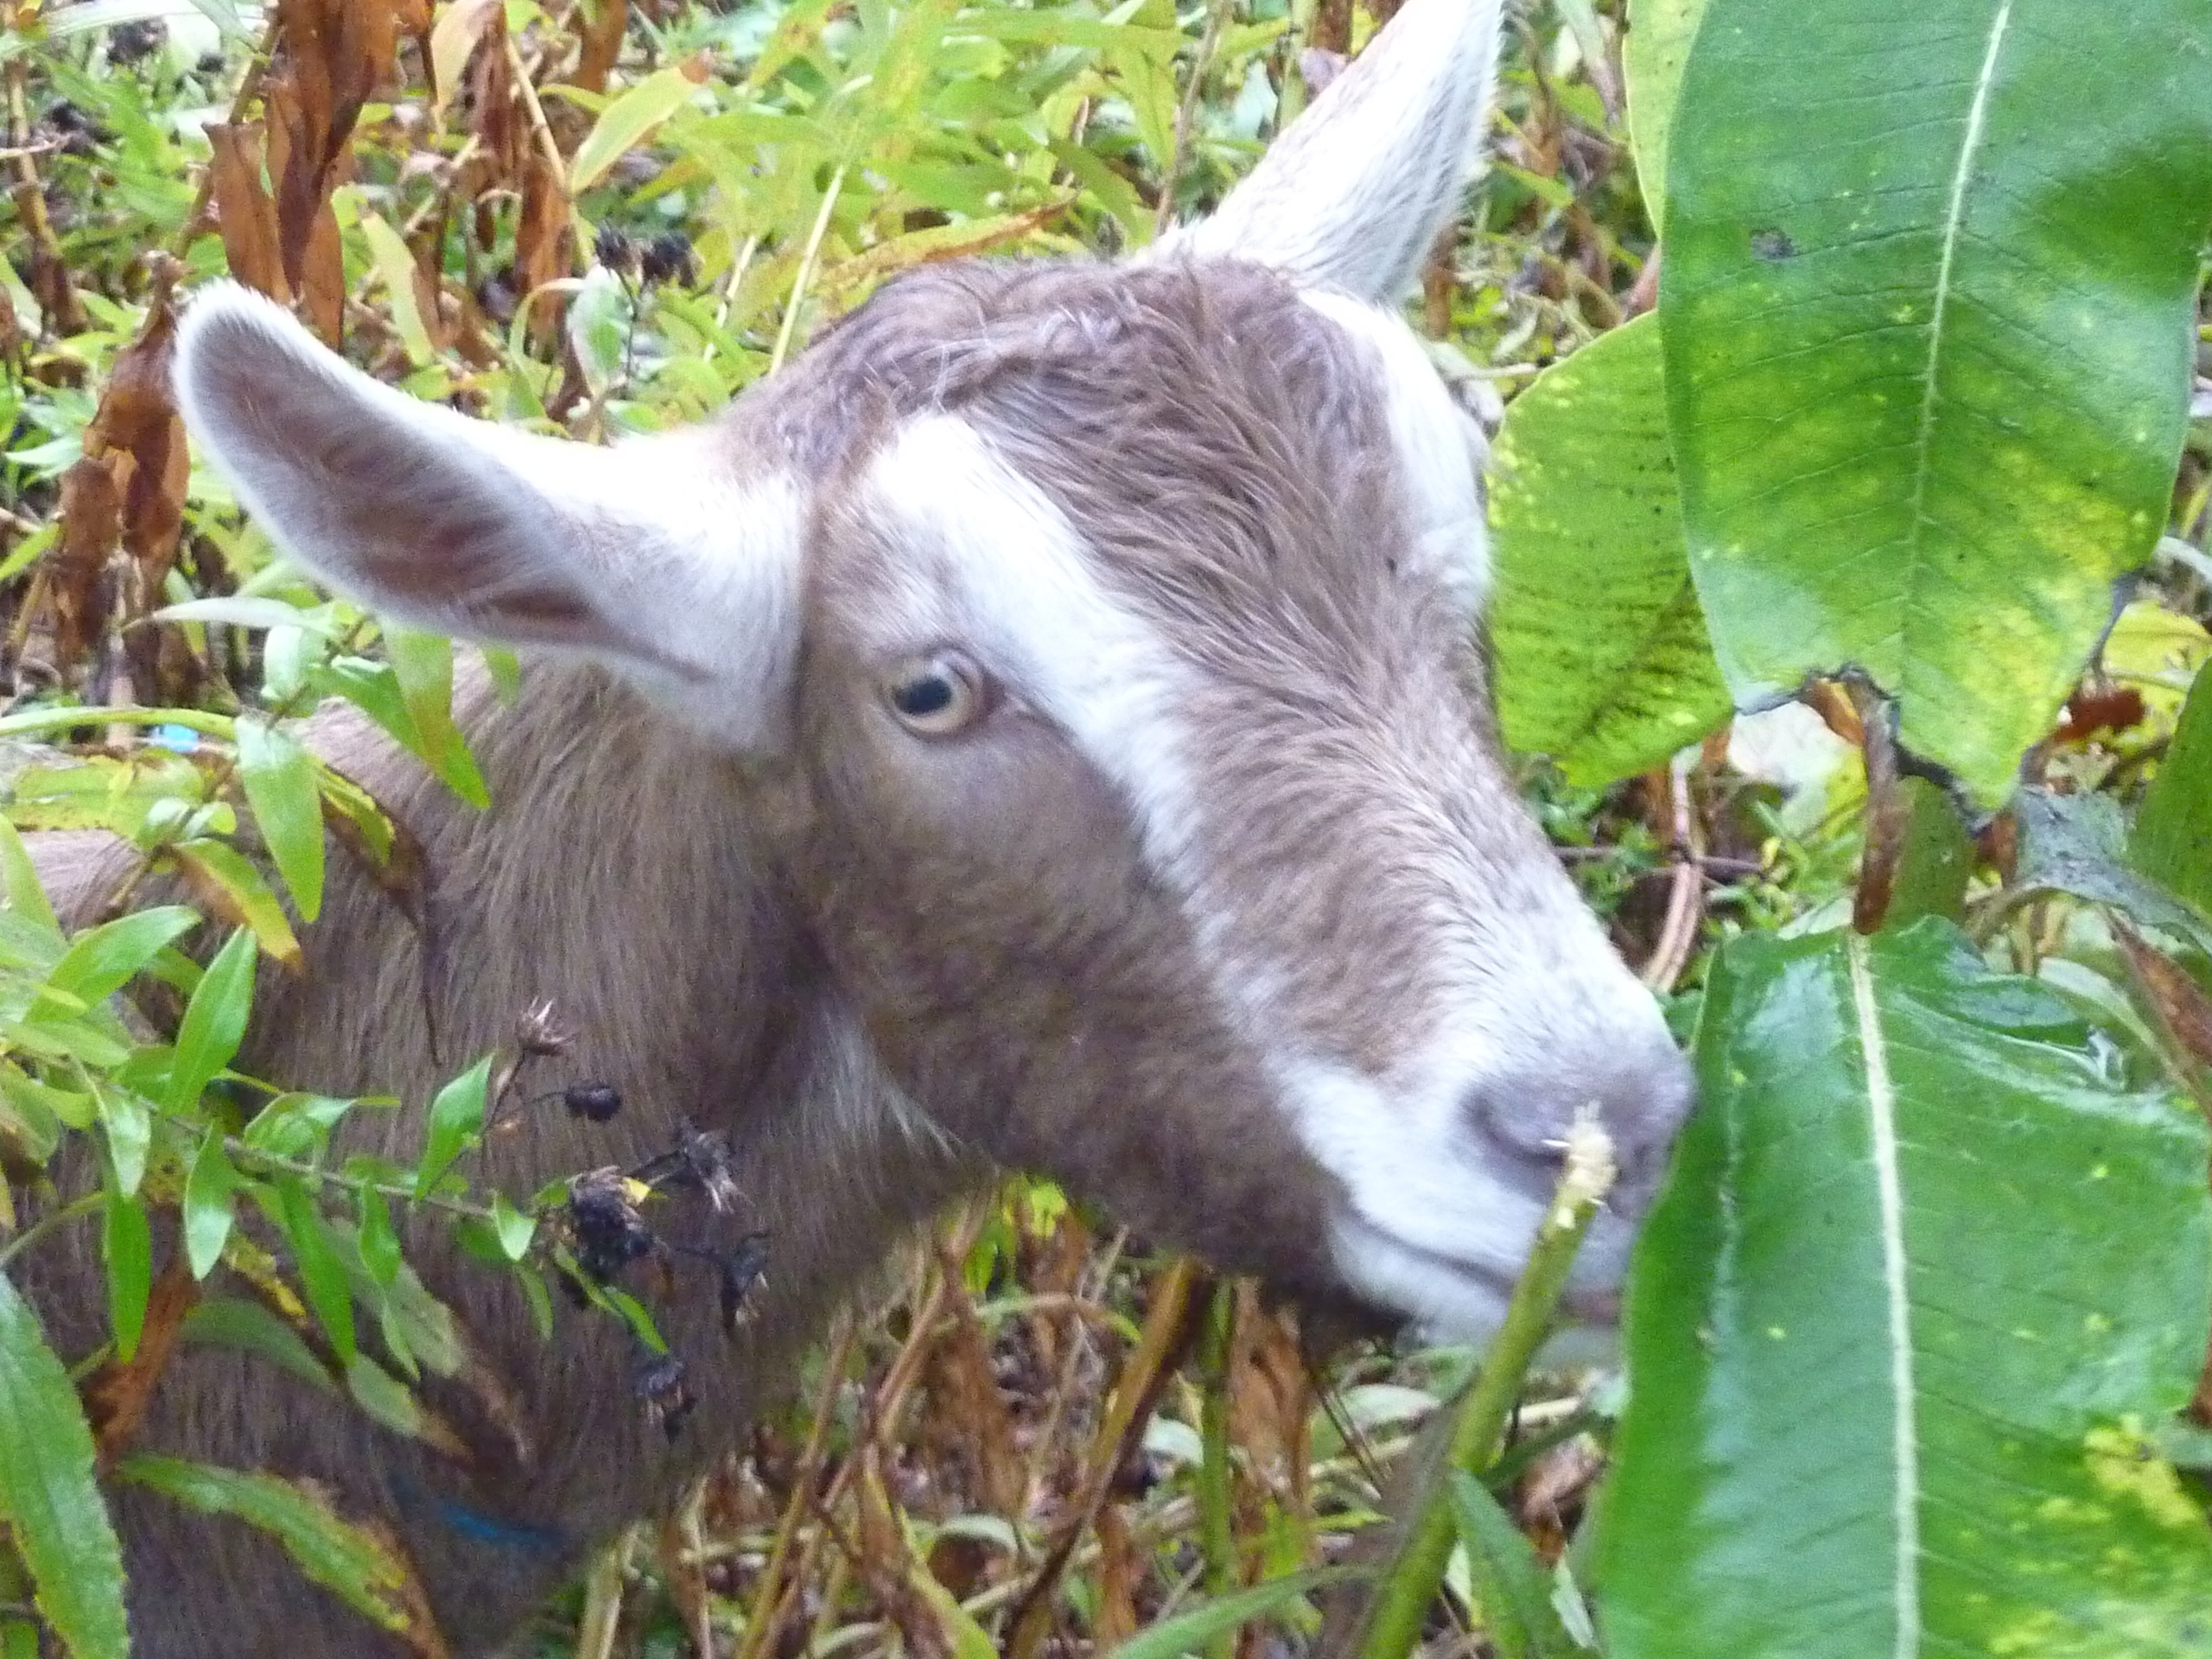 178042ac6962a661bda8_goat_friend.JPG